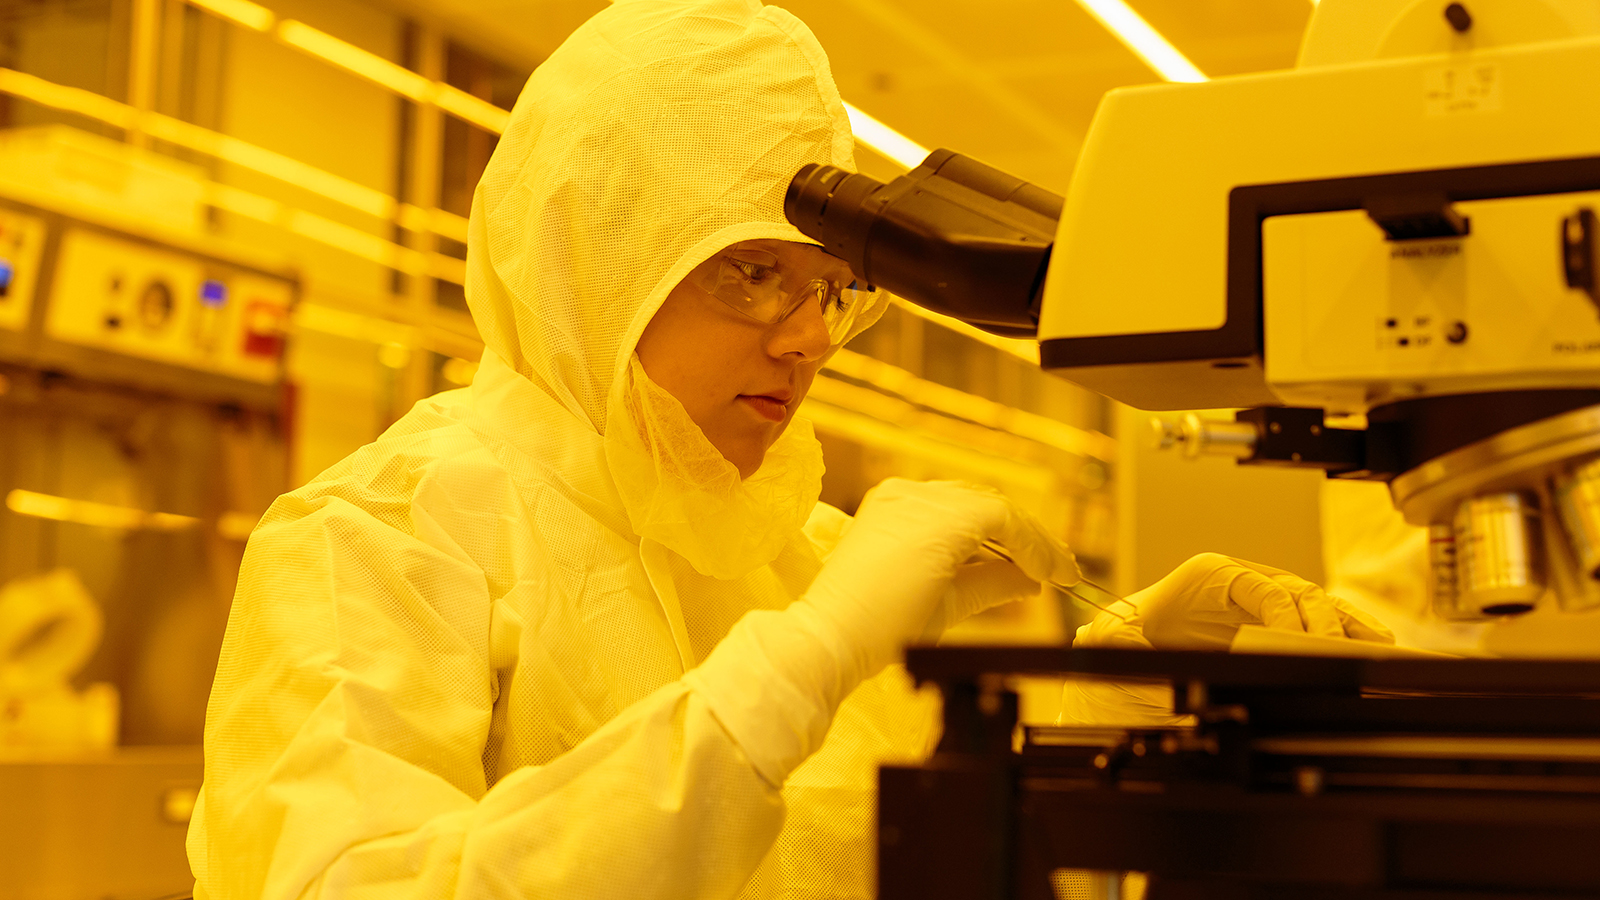 bigail Shearrow, Research Engineer in the Schuster Lab at the University of Chicago, works in the Pritzker Nanofabrication Facility in the basement of the University's William Eckhardt Research Center.